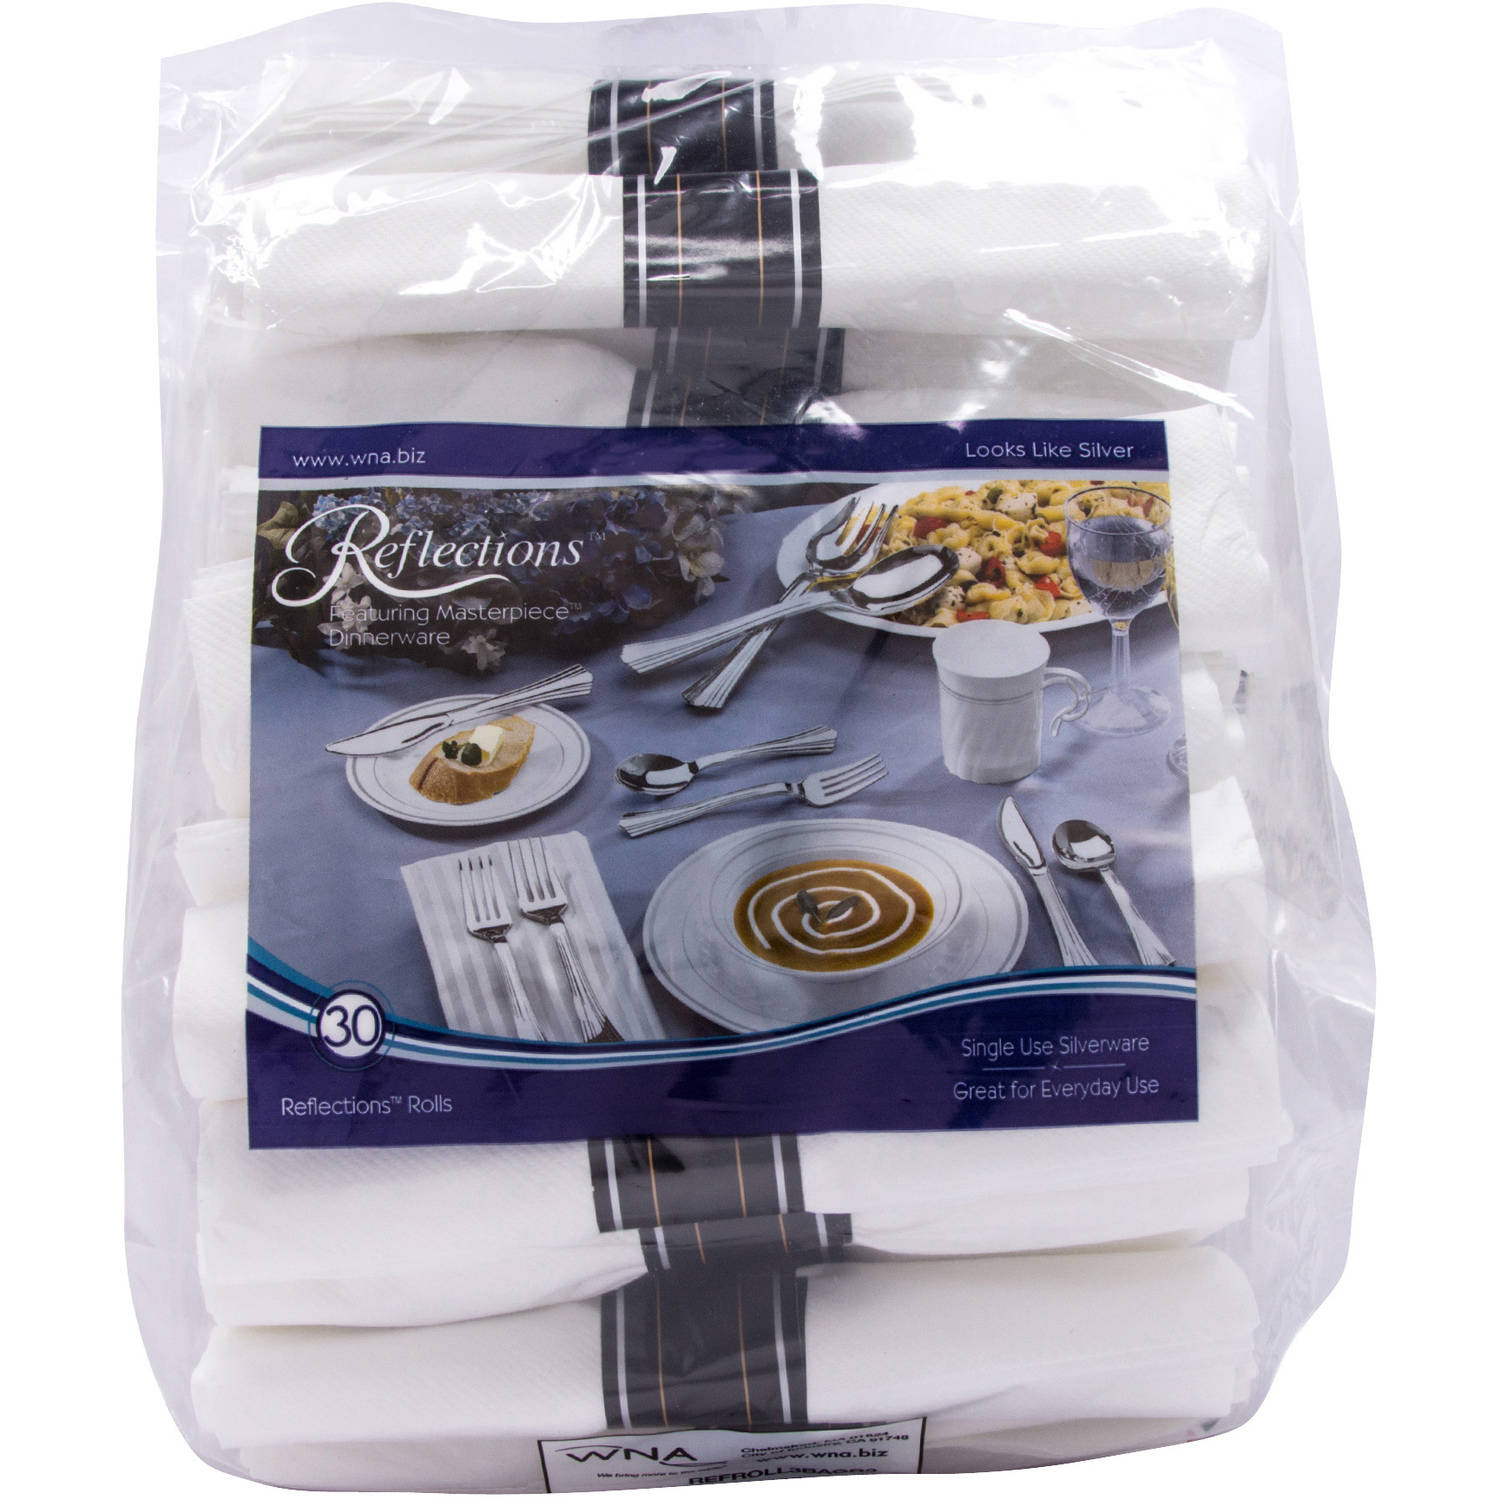 WNA Reflections Featuring Masterpiece Dinnerware Plastic Cutlery Rolled Kit, 30 pc